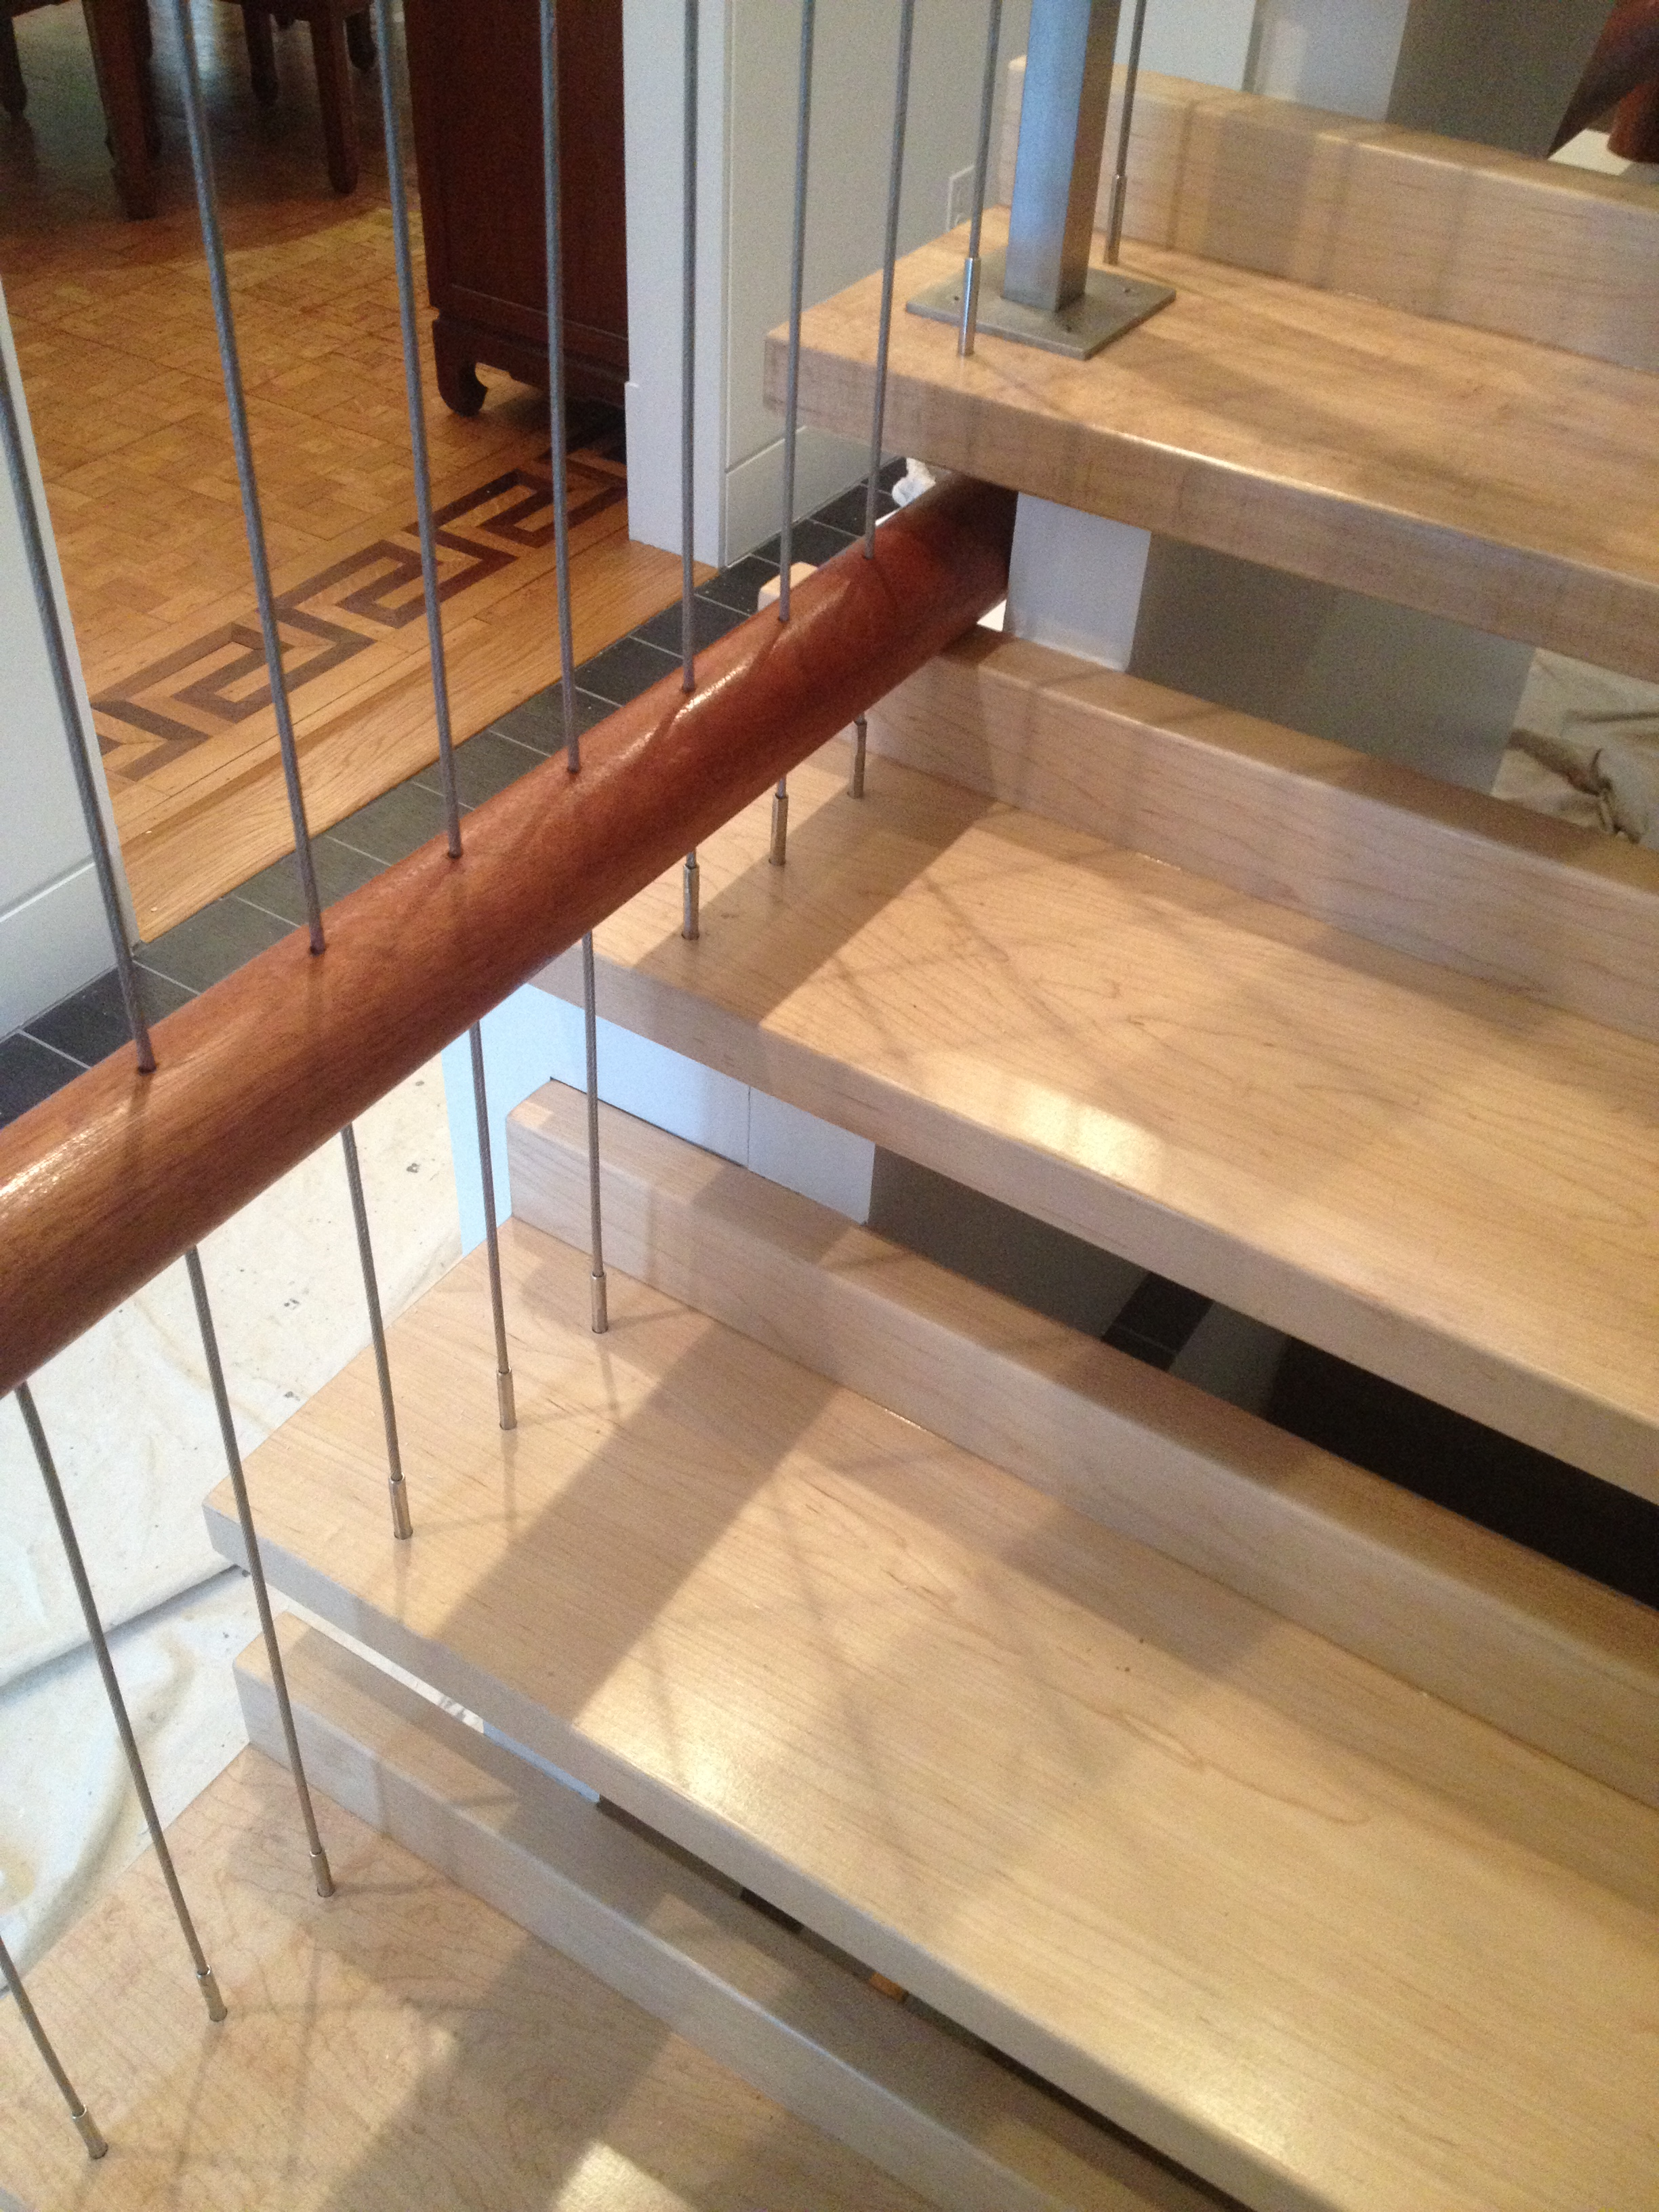 interior railings pictures oak white ideas railing stair inspiration case indoor systems photos designs baluster and